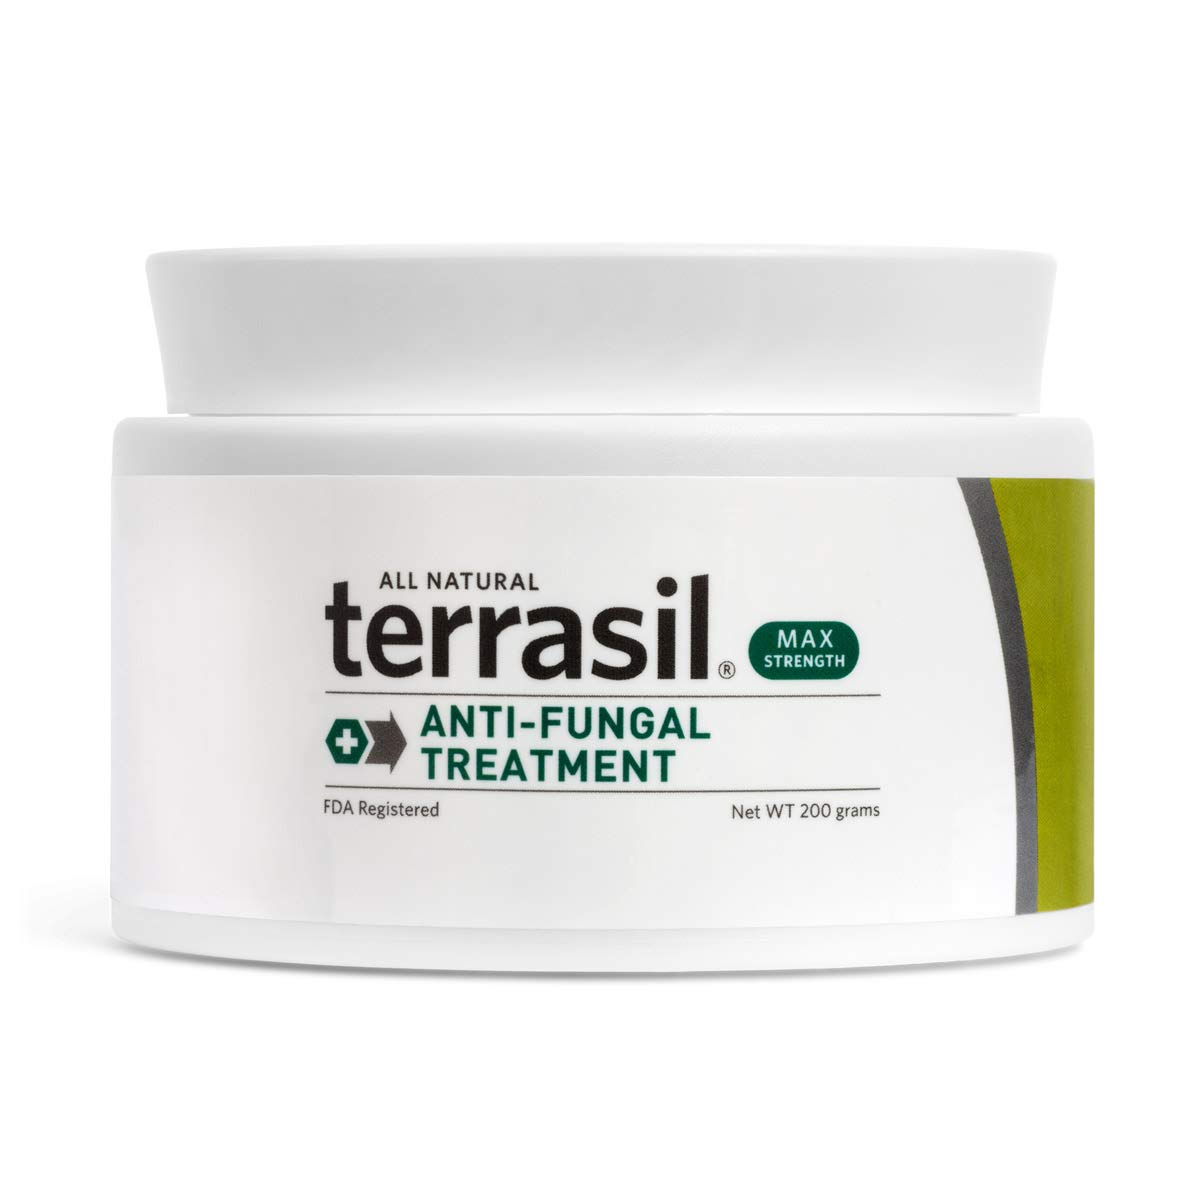 Terrasil® Anti-fungal Treatment MAX - 6X Faster, Doctor Recommended, 100% Guaranteed, All-Natural, Soothing, OTC-Registered ointment for fungal infections (200g Max Jar) by Aidance Skincare & Topical Solutions